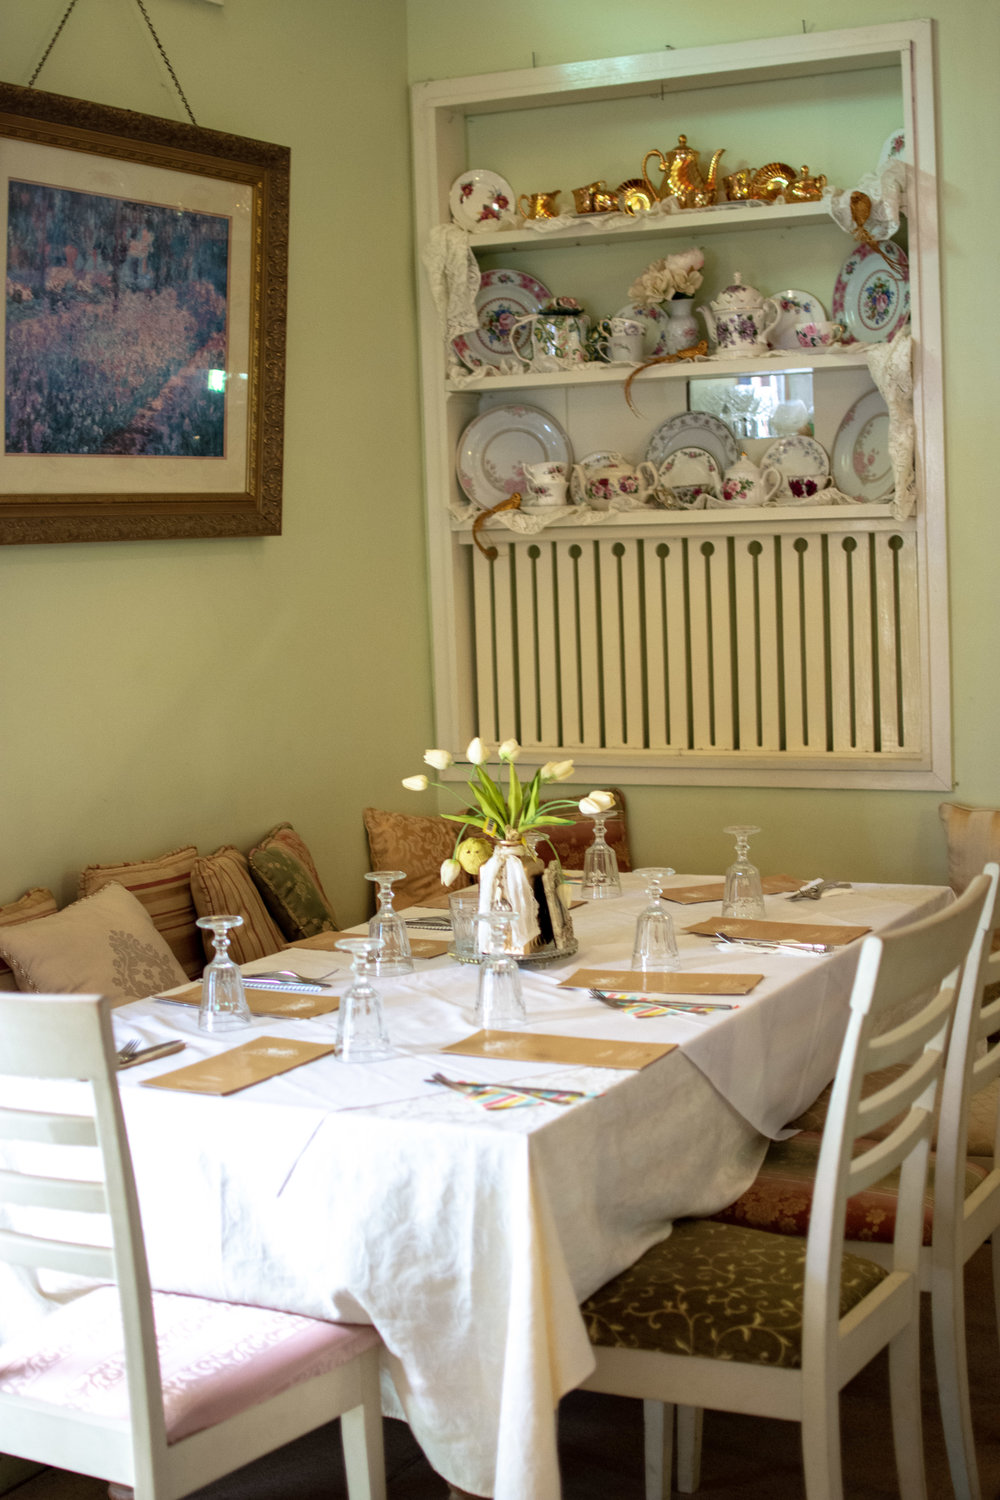 Seating up to 25 people comfortably means you can book your special occasion with us and have it exclusively in the Tearoom!